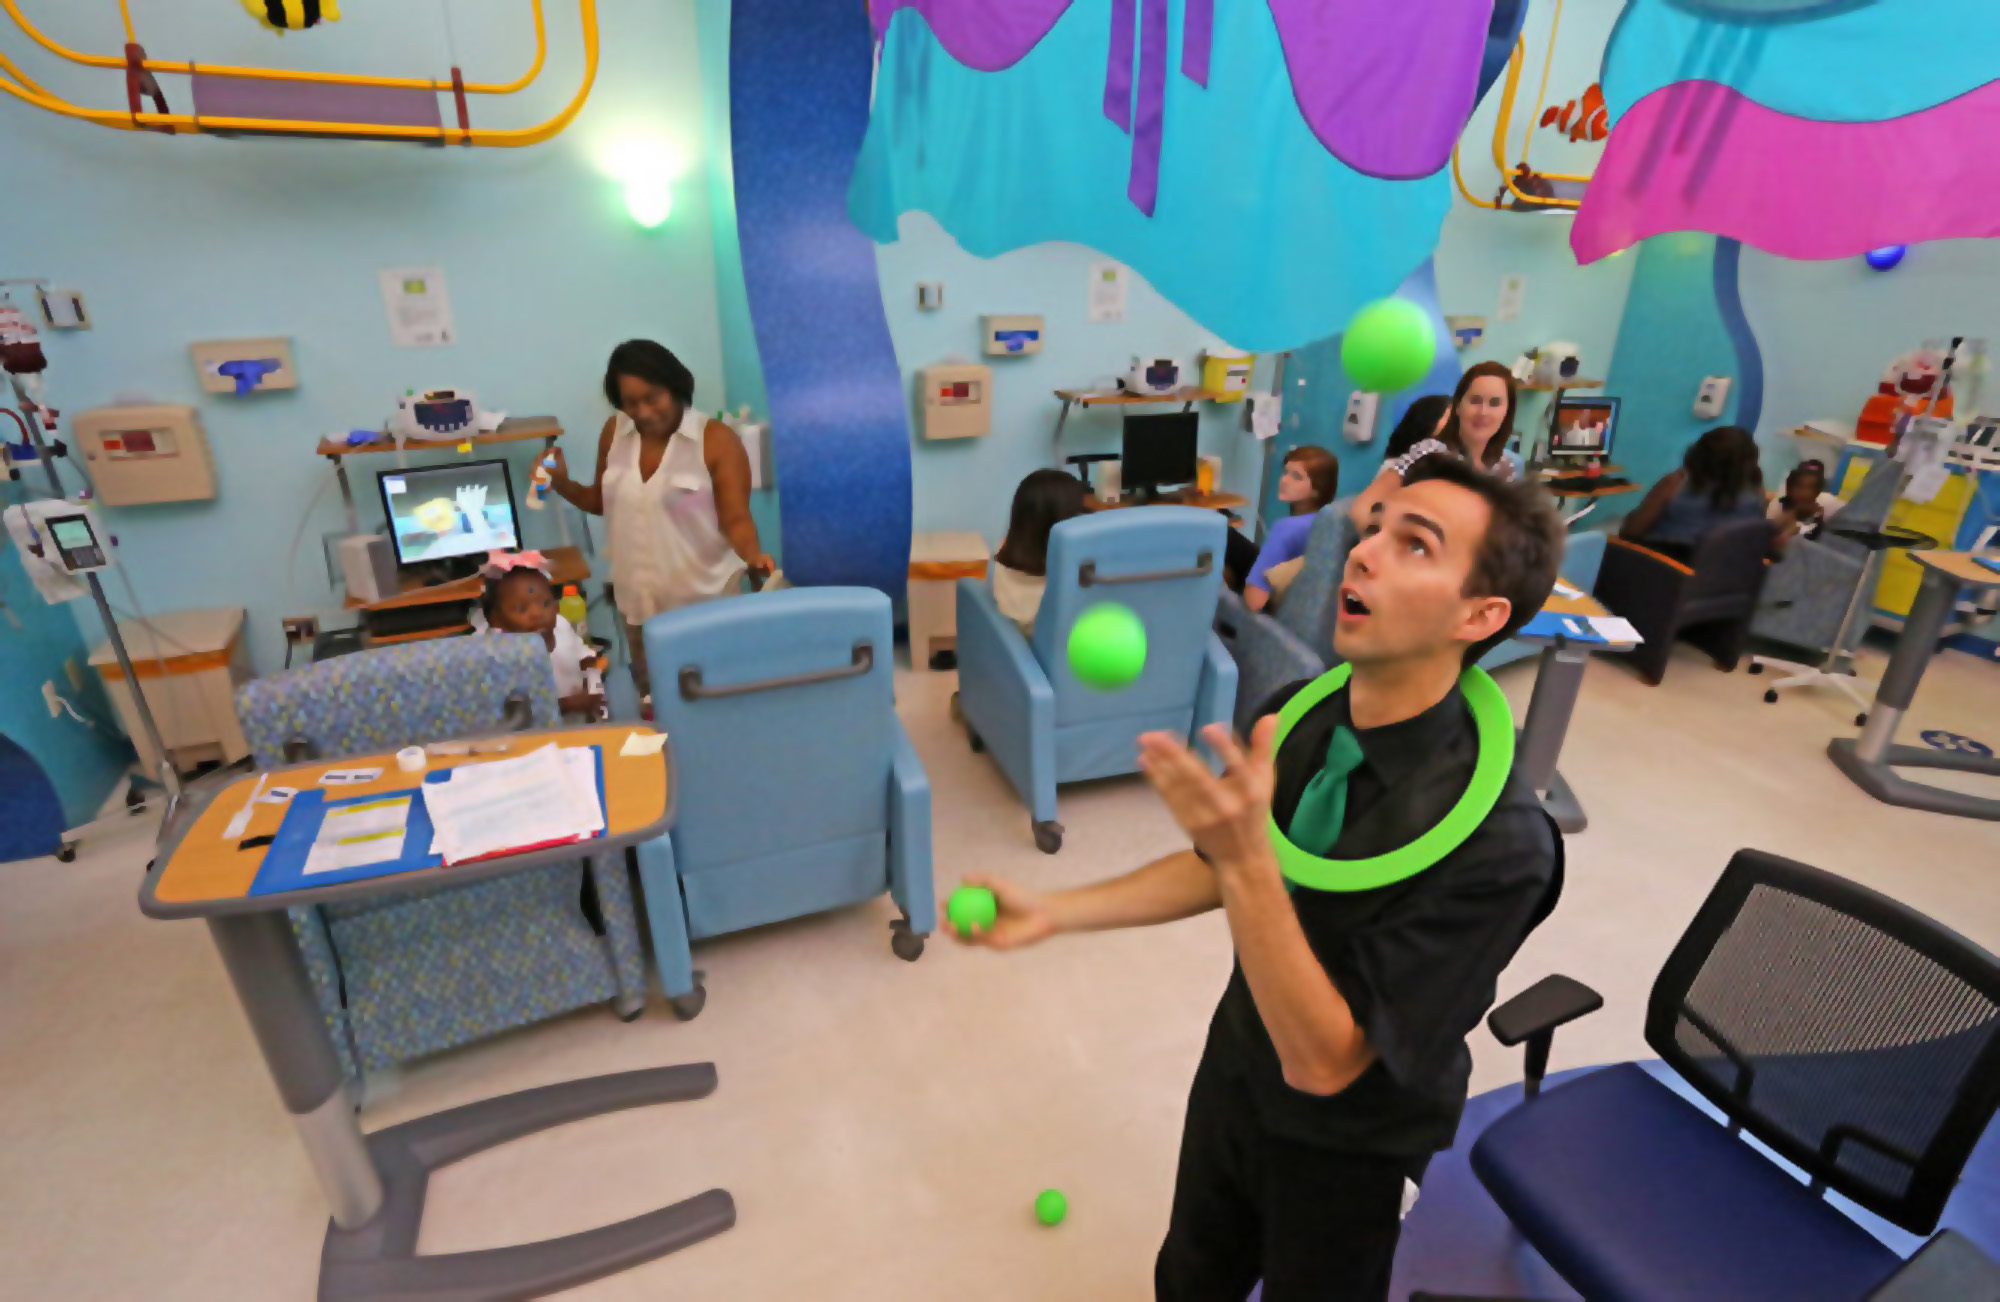 Entertaining for Families at a Children's Hospital